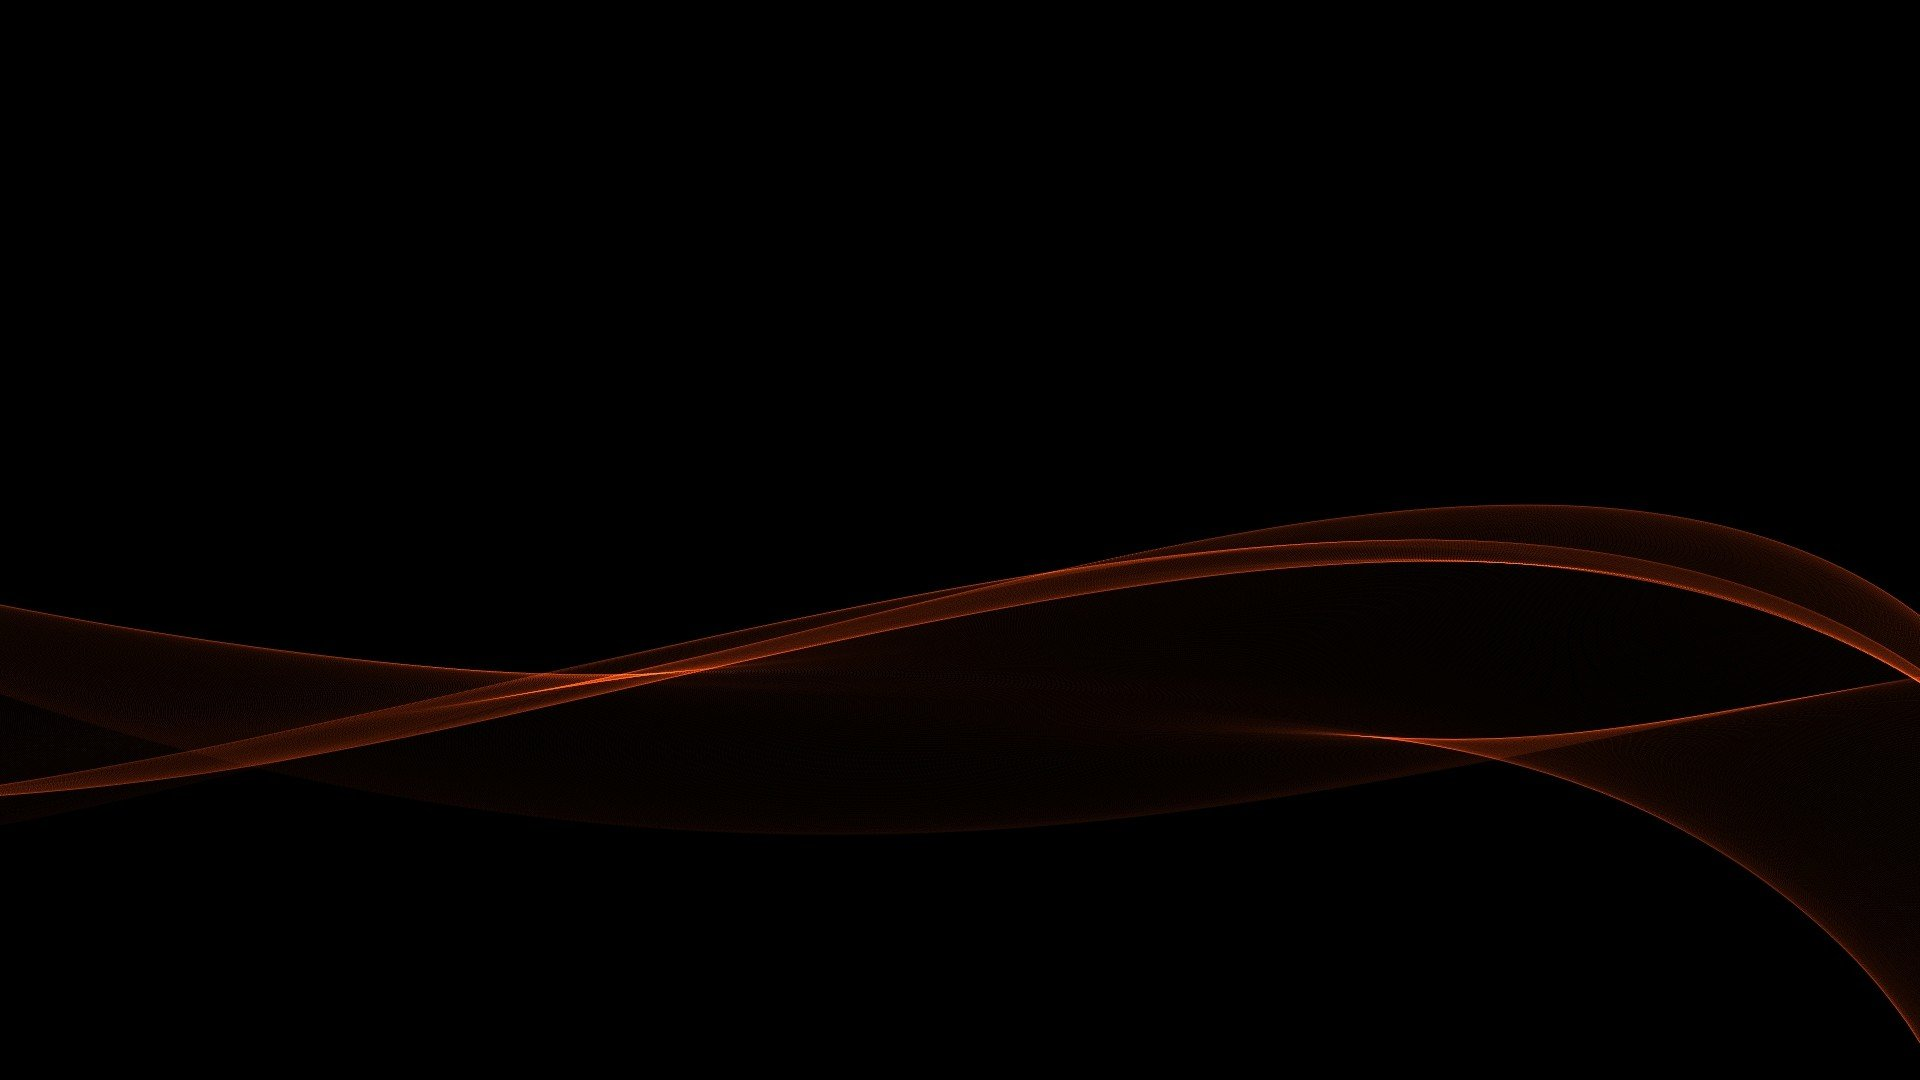 Red Gradient Minimalistic Waves Black Abstract Wallpaper Desktop Wallpapers Images Minimalist Greywolf Consulting Services